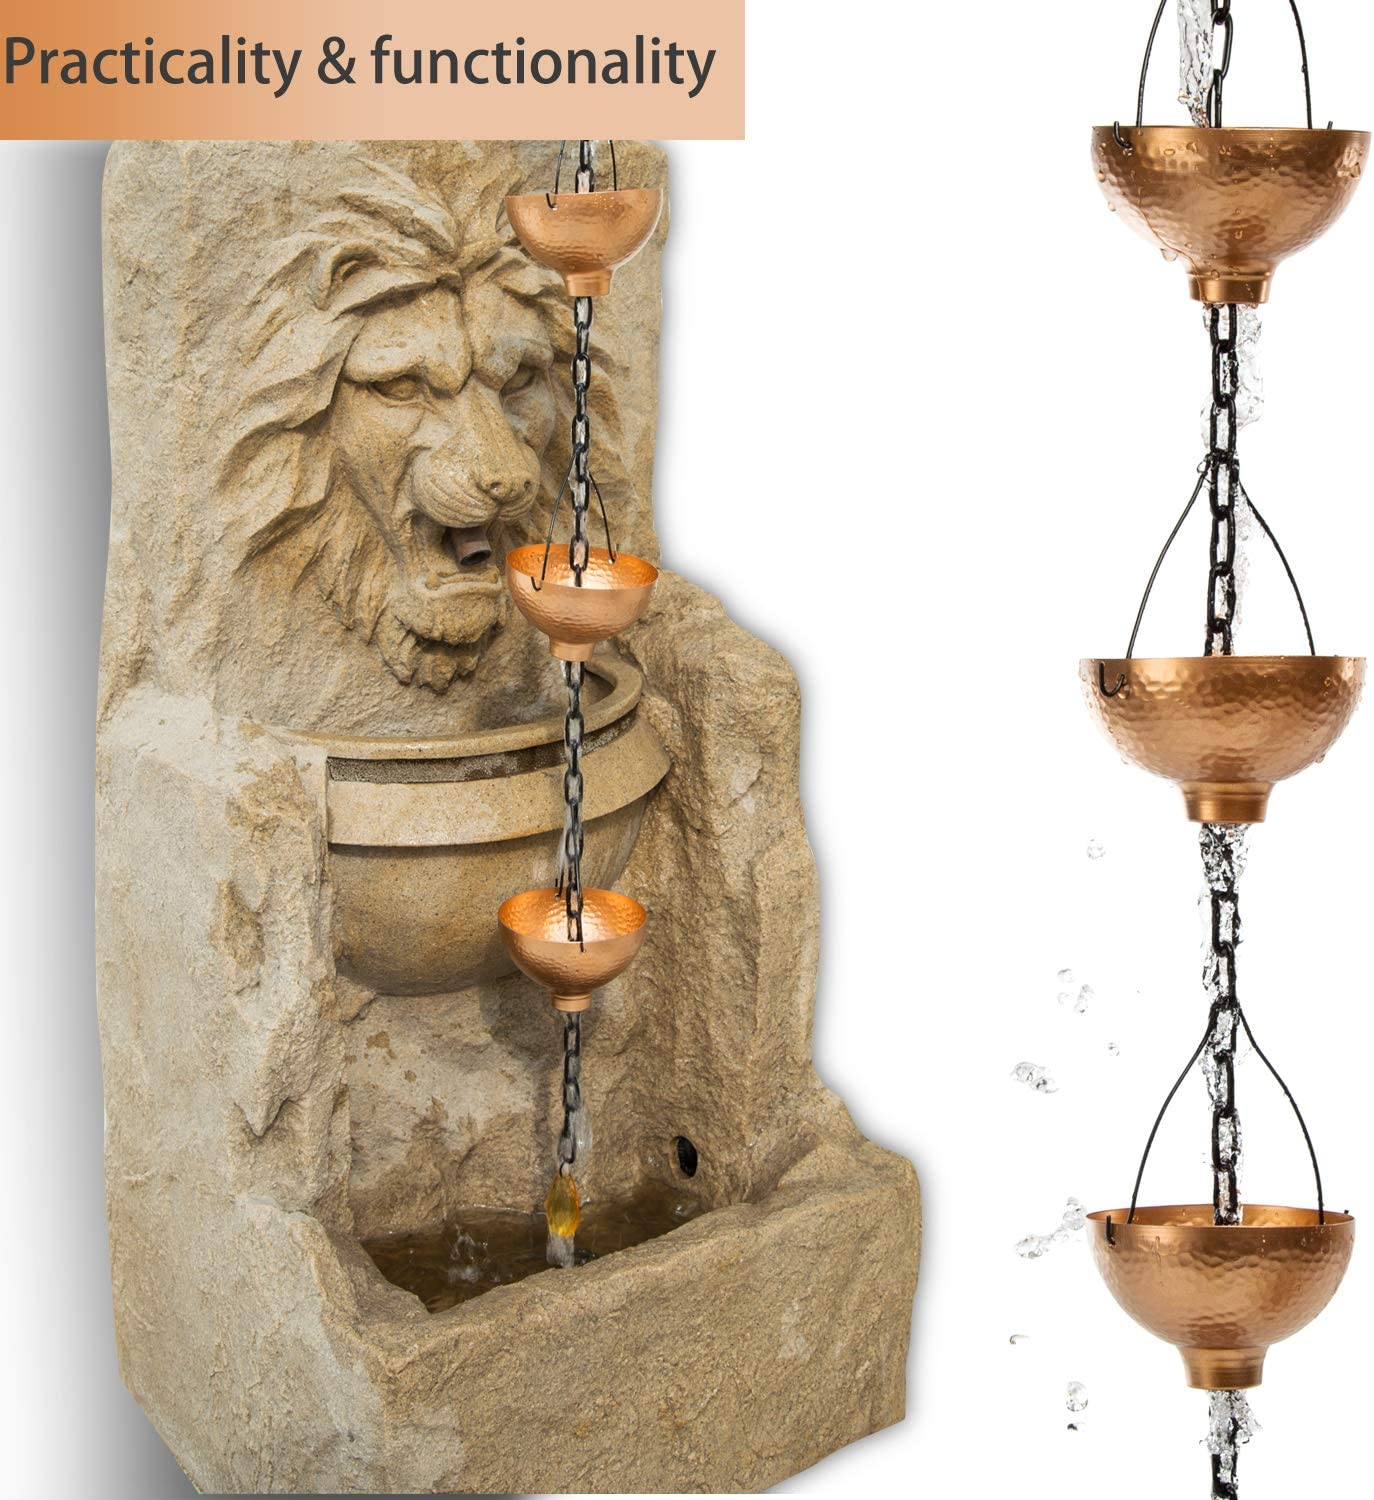 8-1//2 FT Bright Copper Lattice Rain Chain with Bowl-Shaped Cups for Rain Catcher System to Divert Rainwater Gofunfun Rain Chain of Gutters